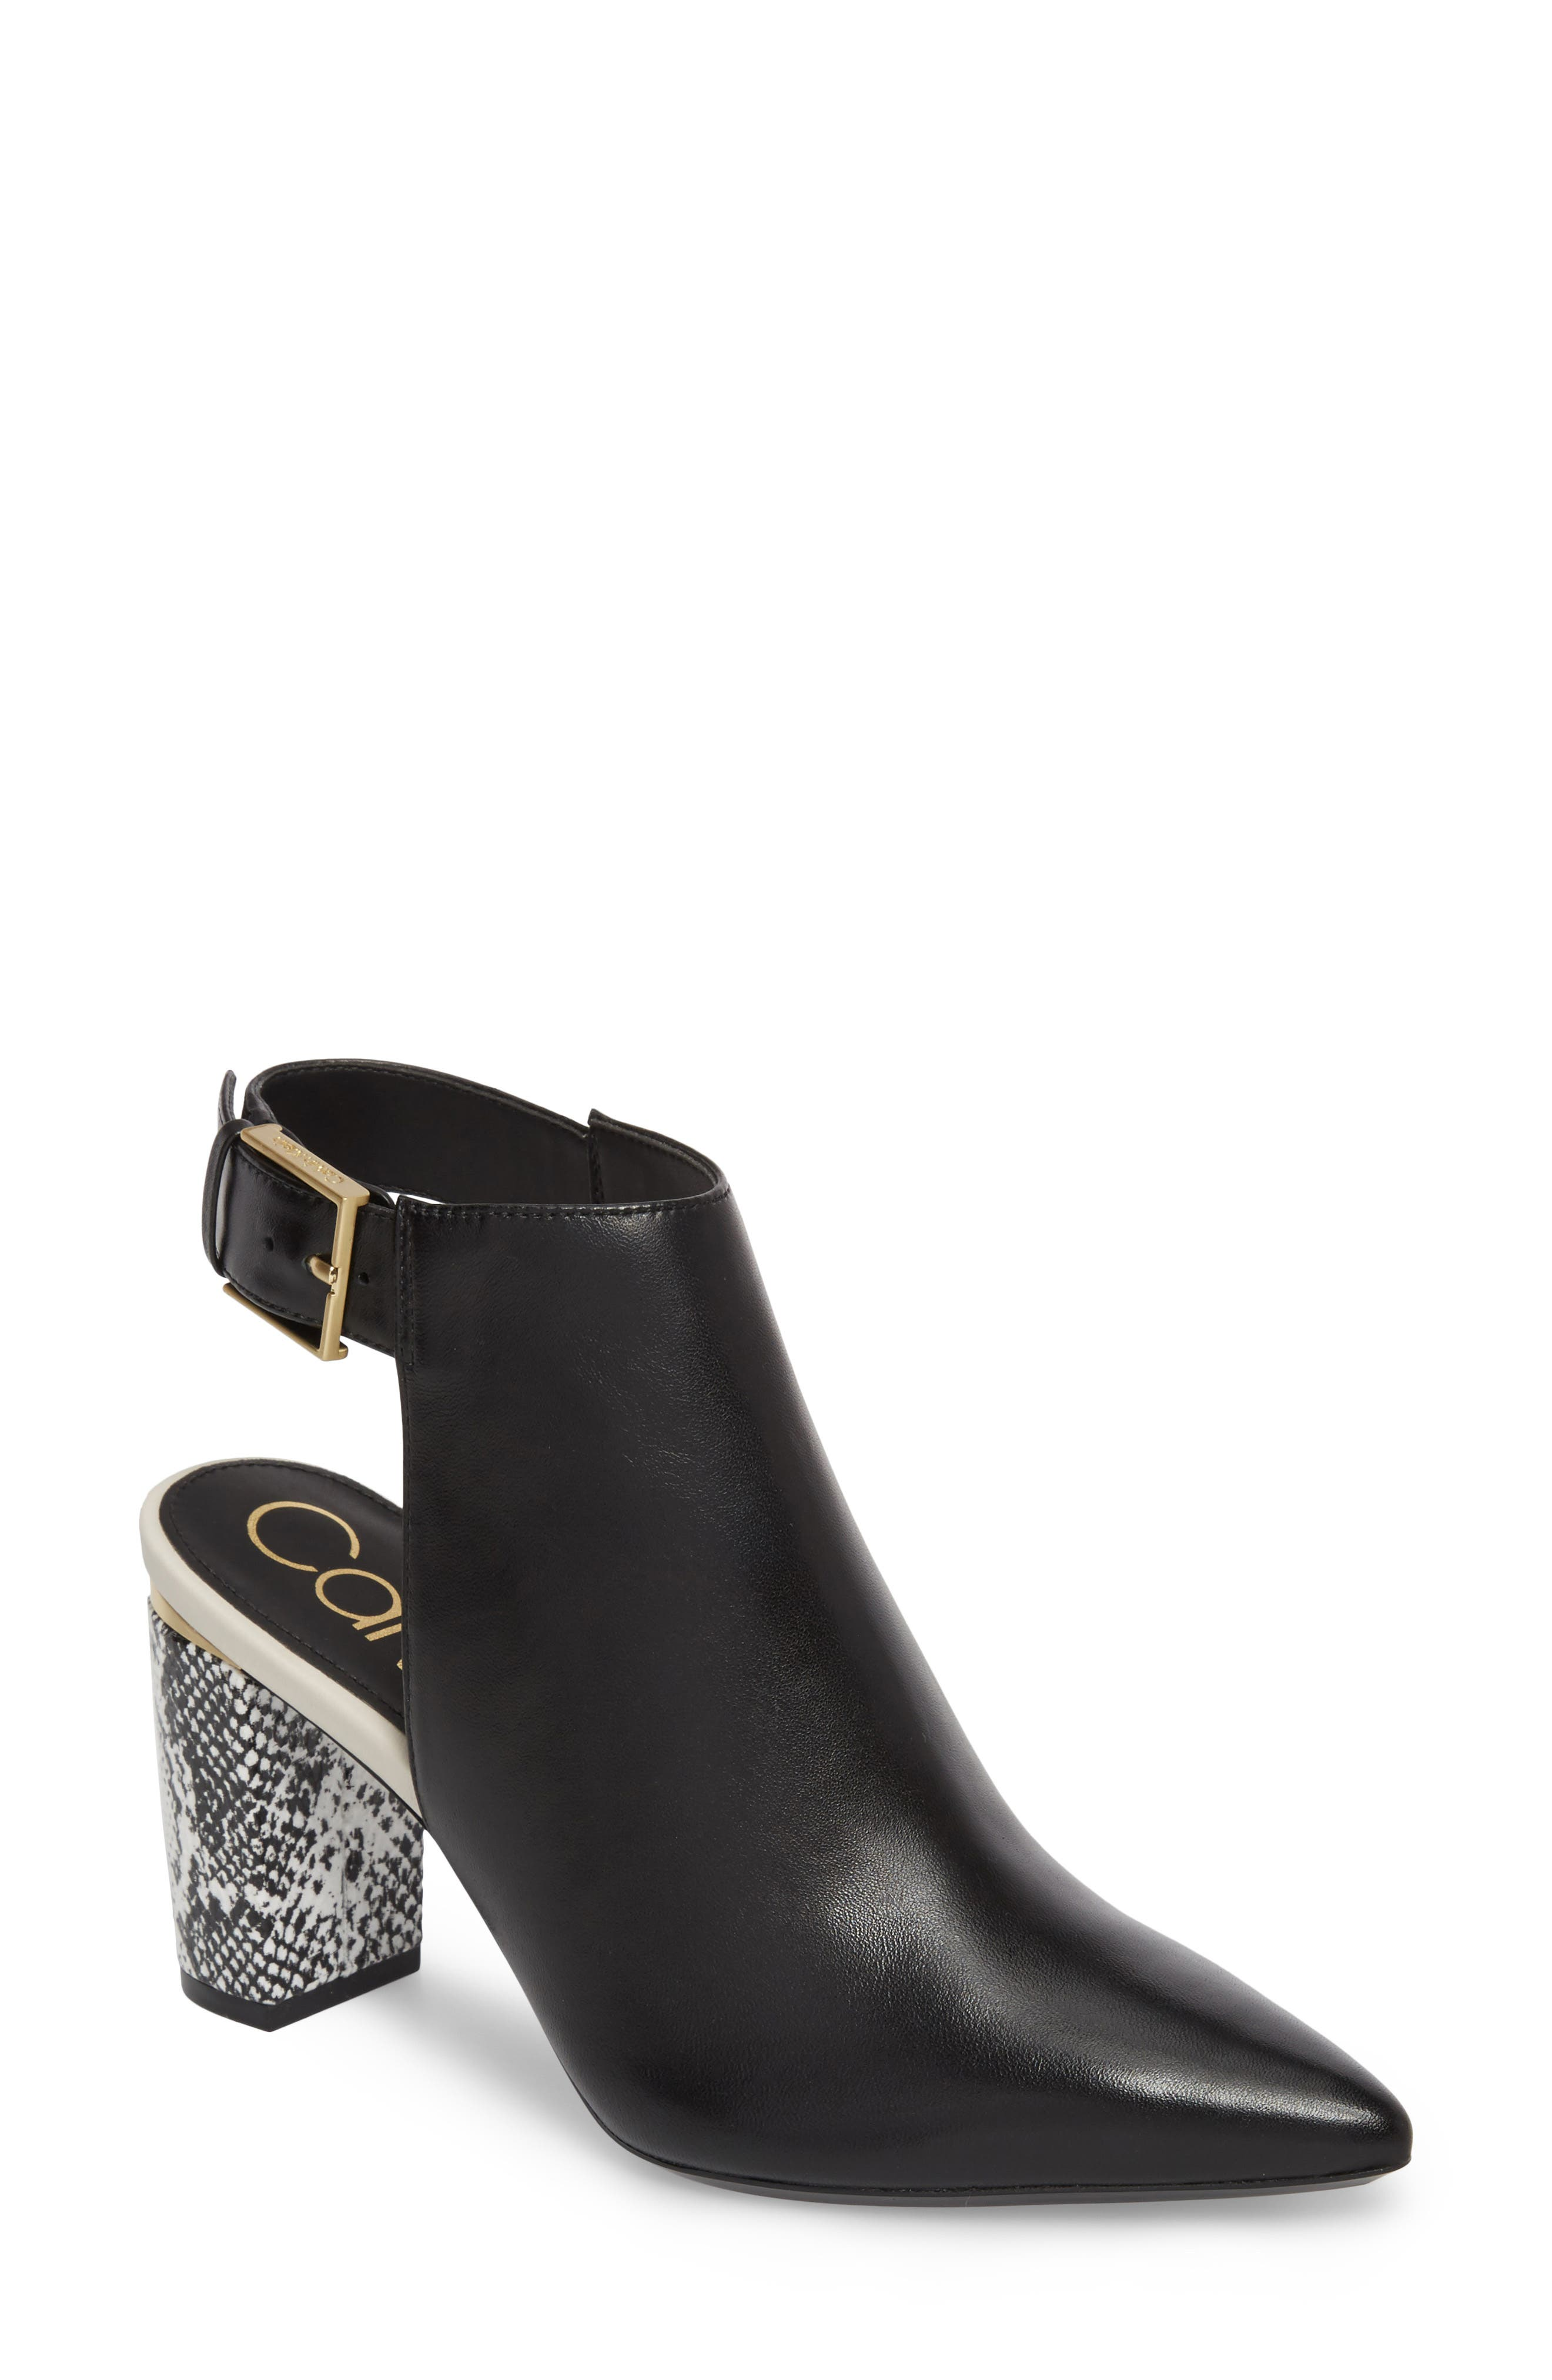 Evanah Pointy Toe Bootie,                         Main,                         color, Black Leather